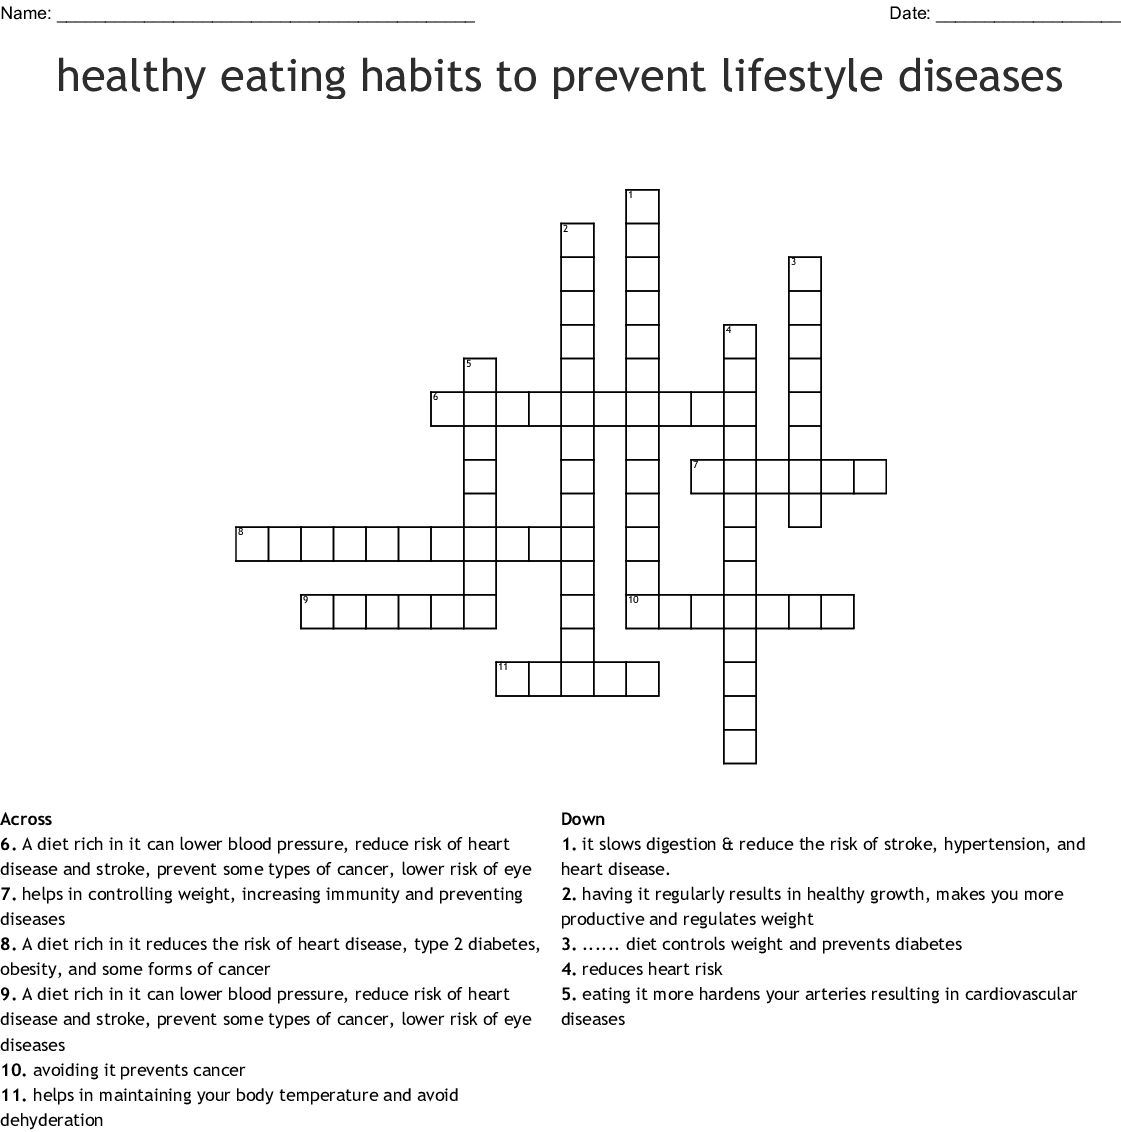 Healthy Habits To Prevent Lifestyle Diseases Crossword